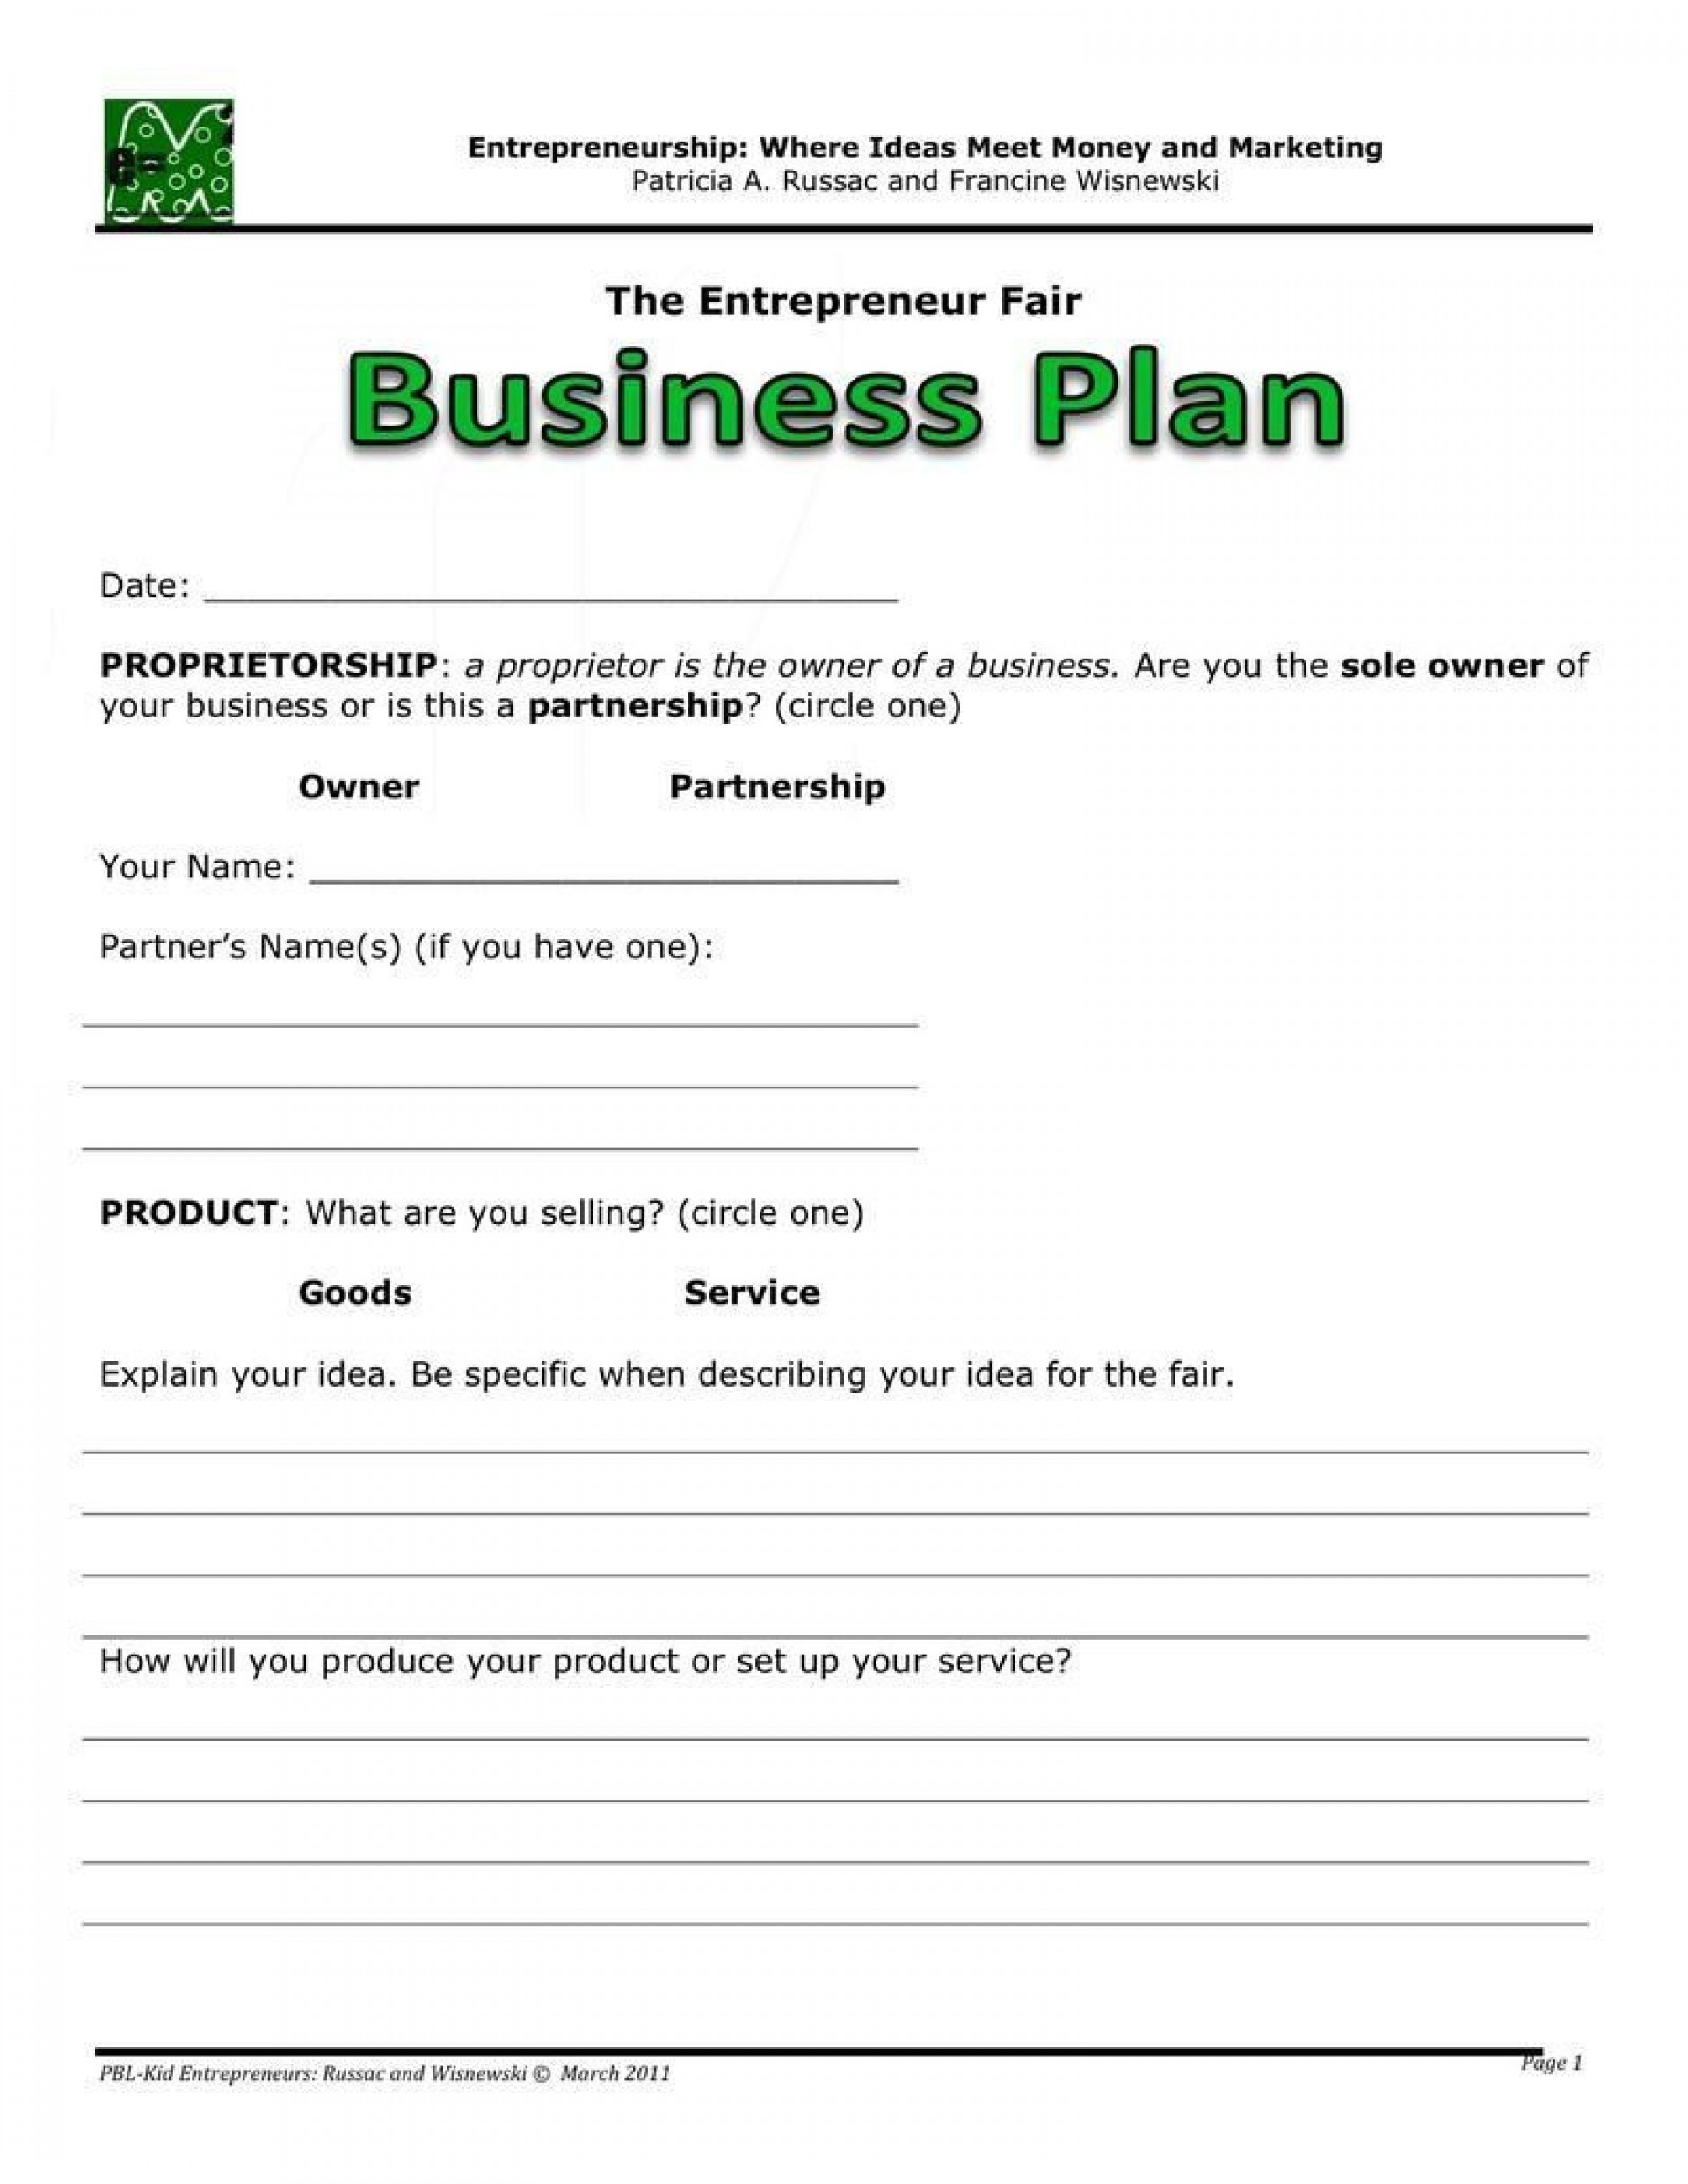 005 Surprising Easy Busines Plan Template Picture  For Free Basic Sample Pdf1920